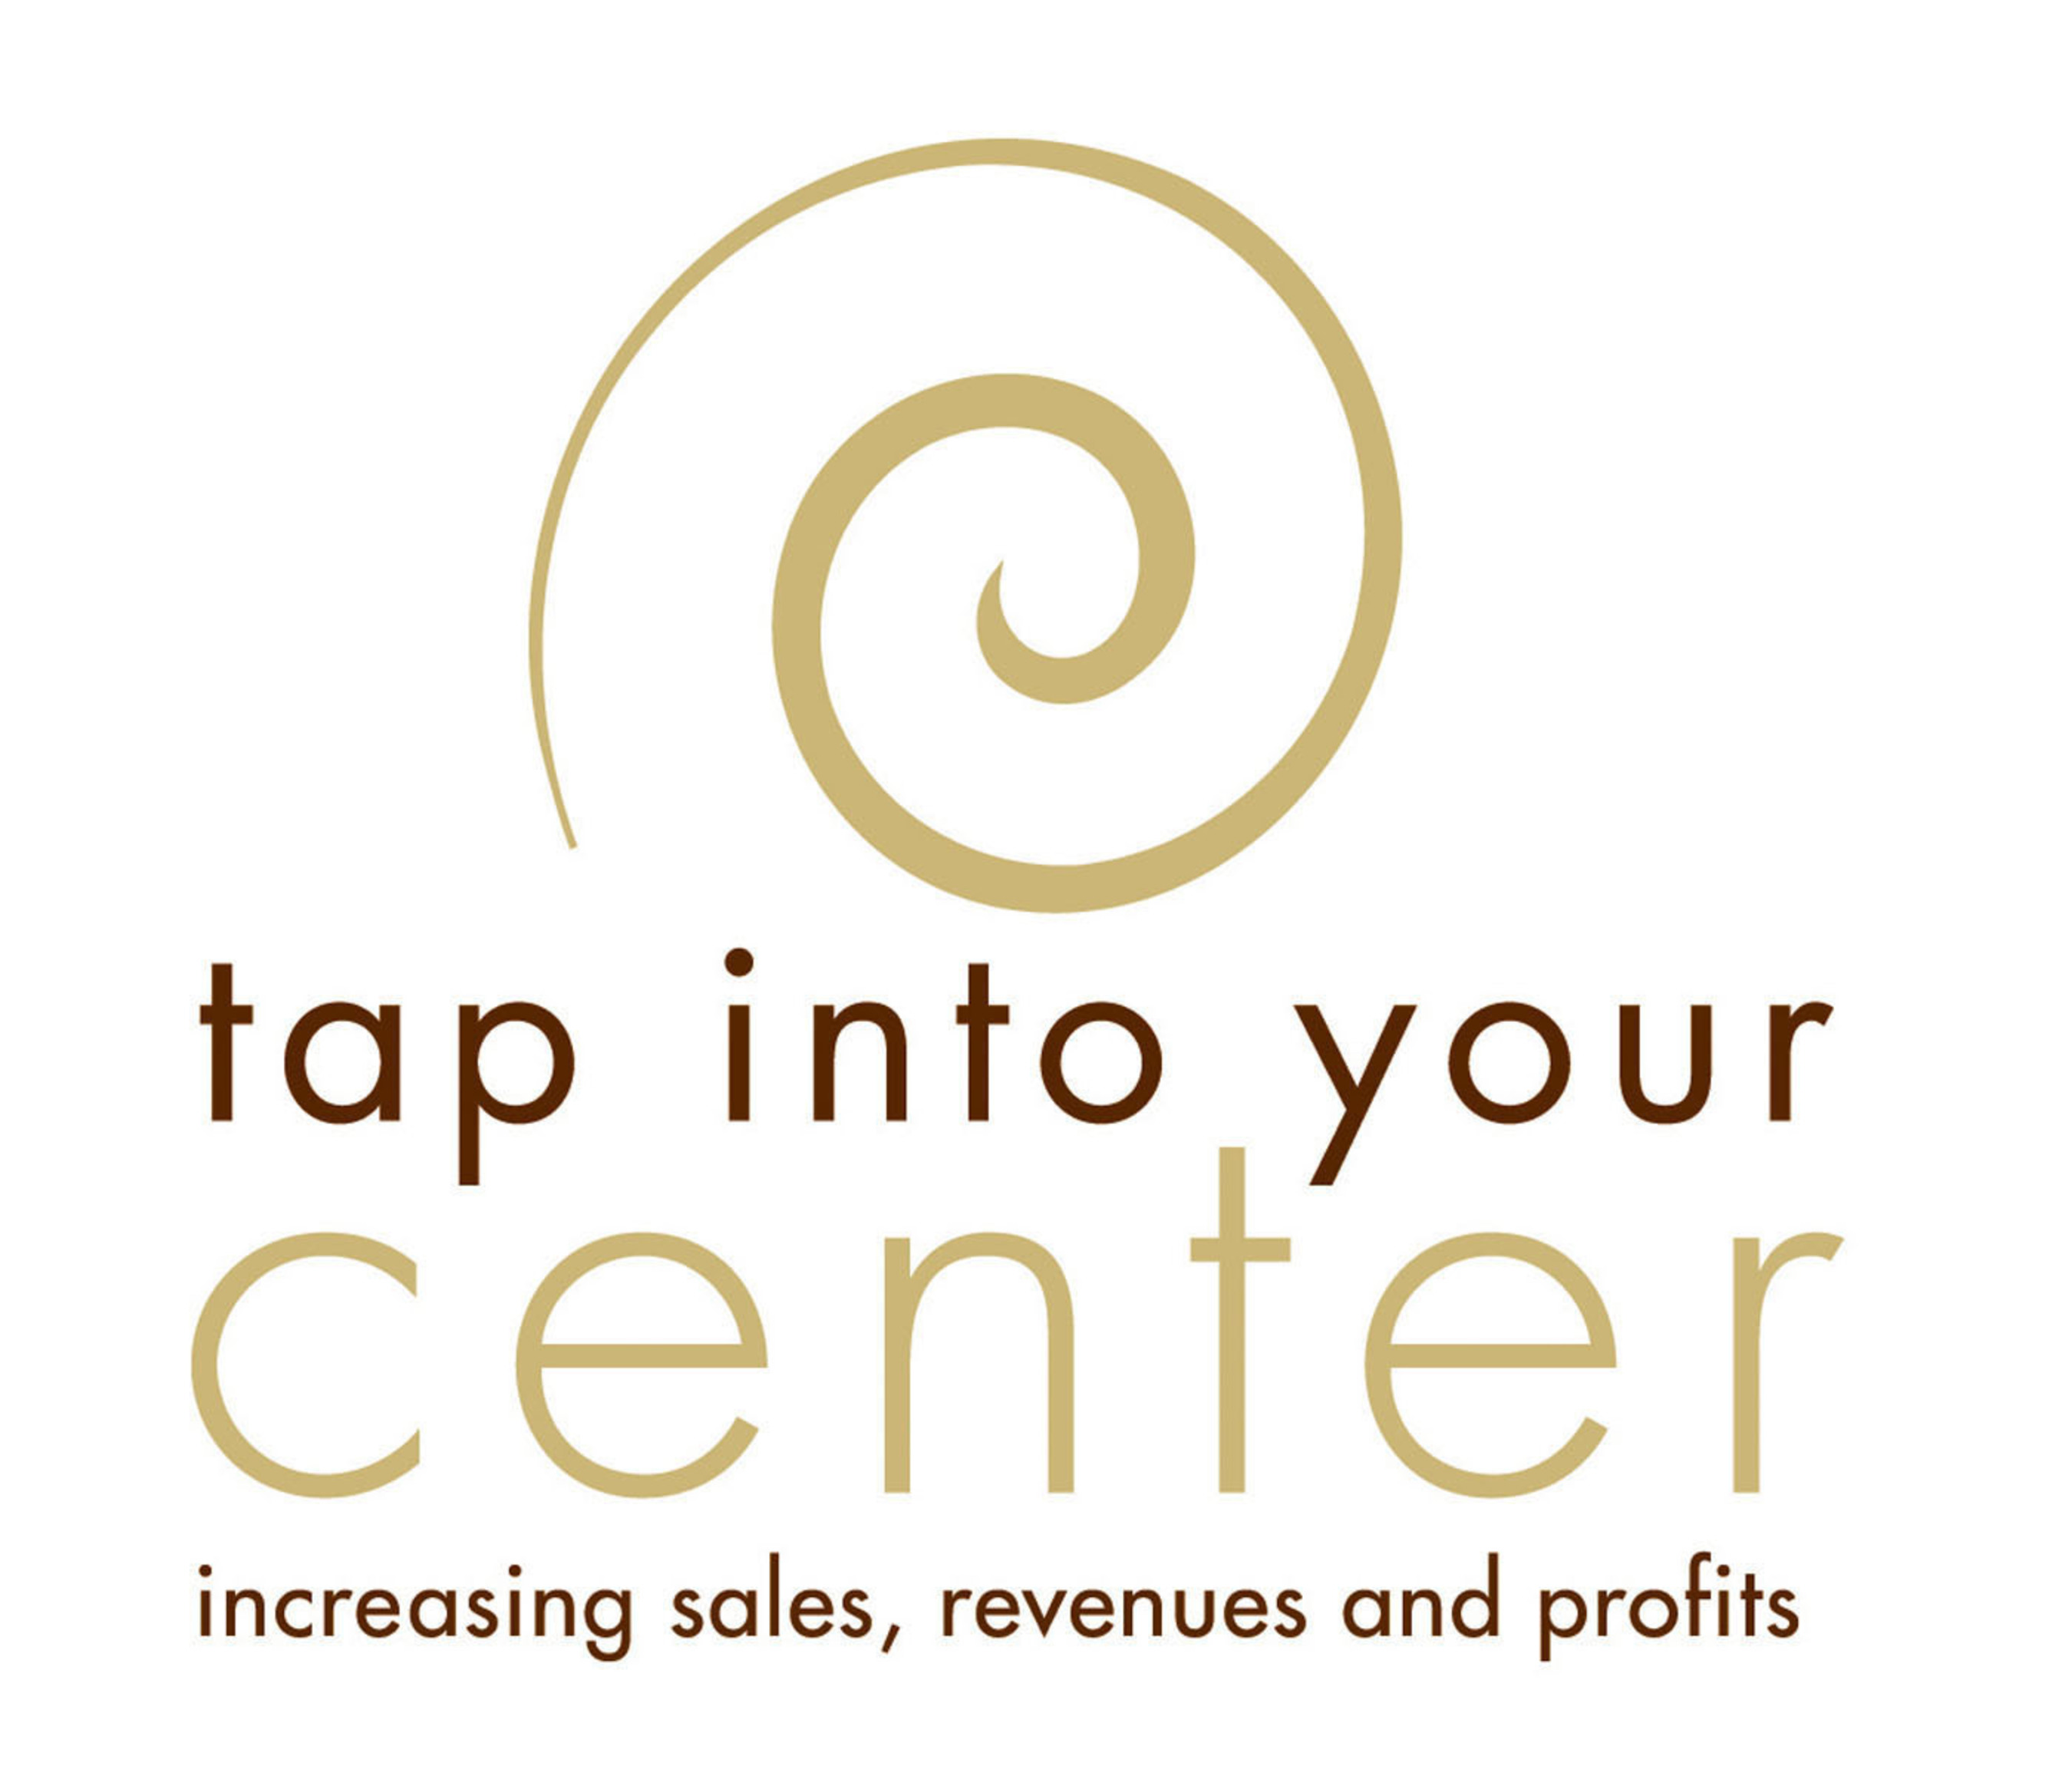 Tap Into Your Center - Increasing Sales, Revenues and Profits(TM) logo. (PRNewsFoto/Lighthouse Marketing, Inc.) (PRNewsFoto/LIGHTHOUSE MARKETING, INC.)